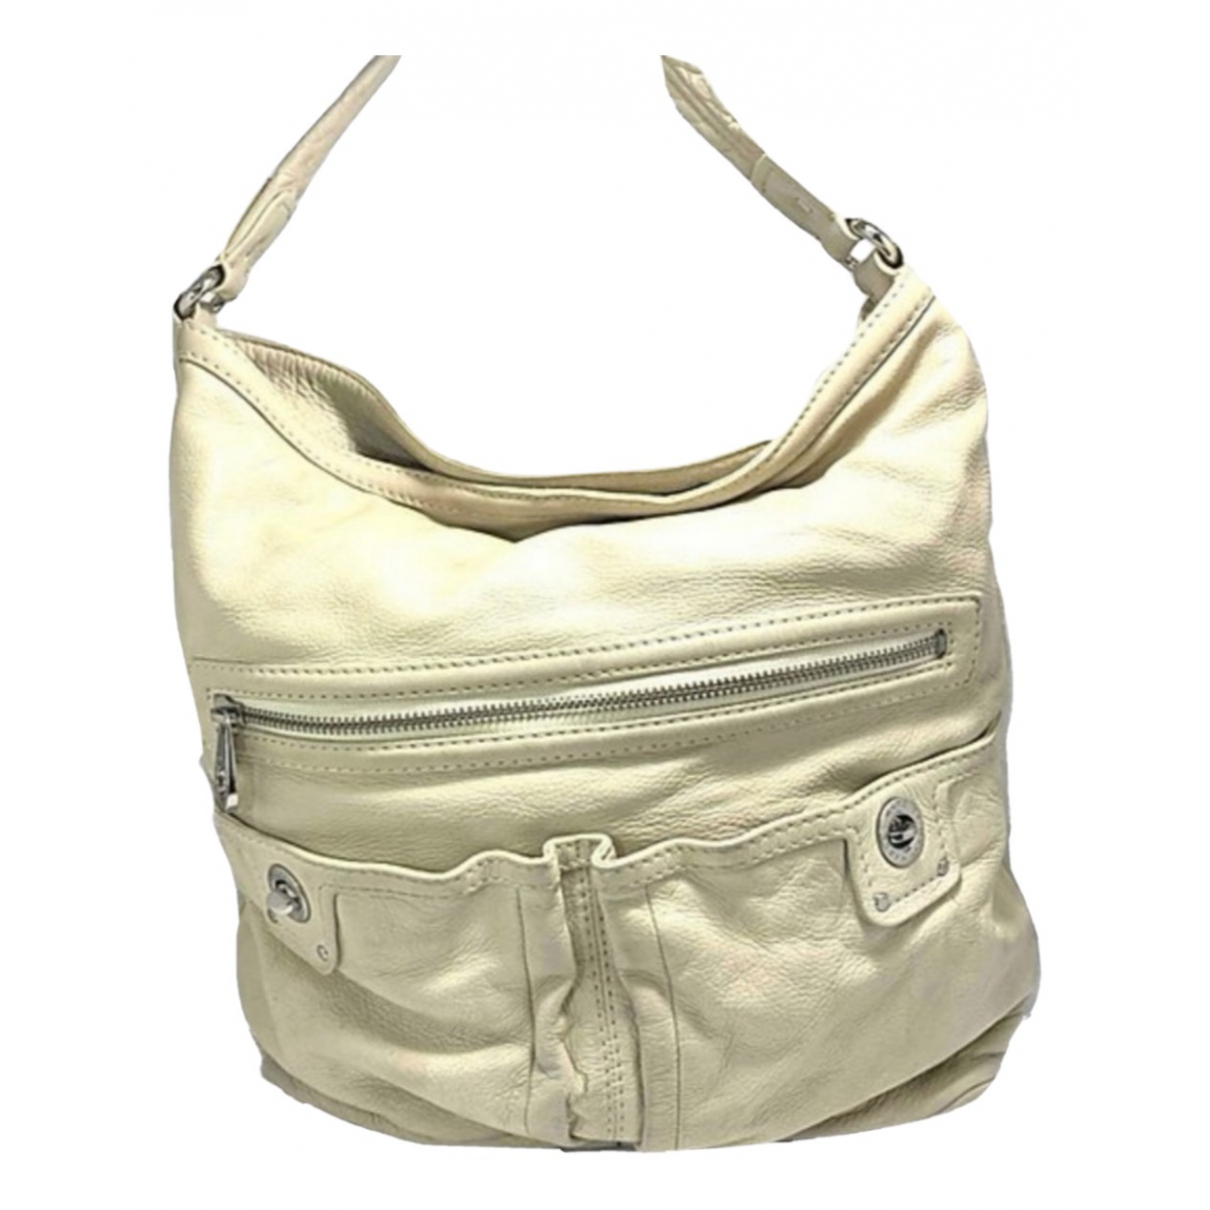 Marc By Marc Jacobs N Leather handbag for Women N